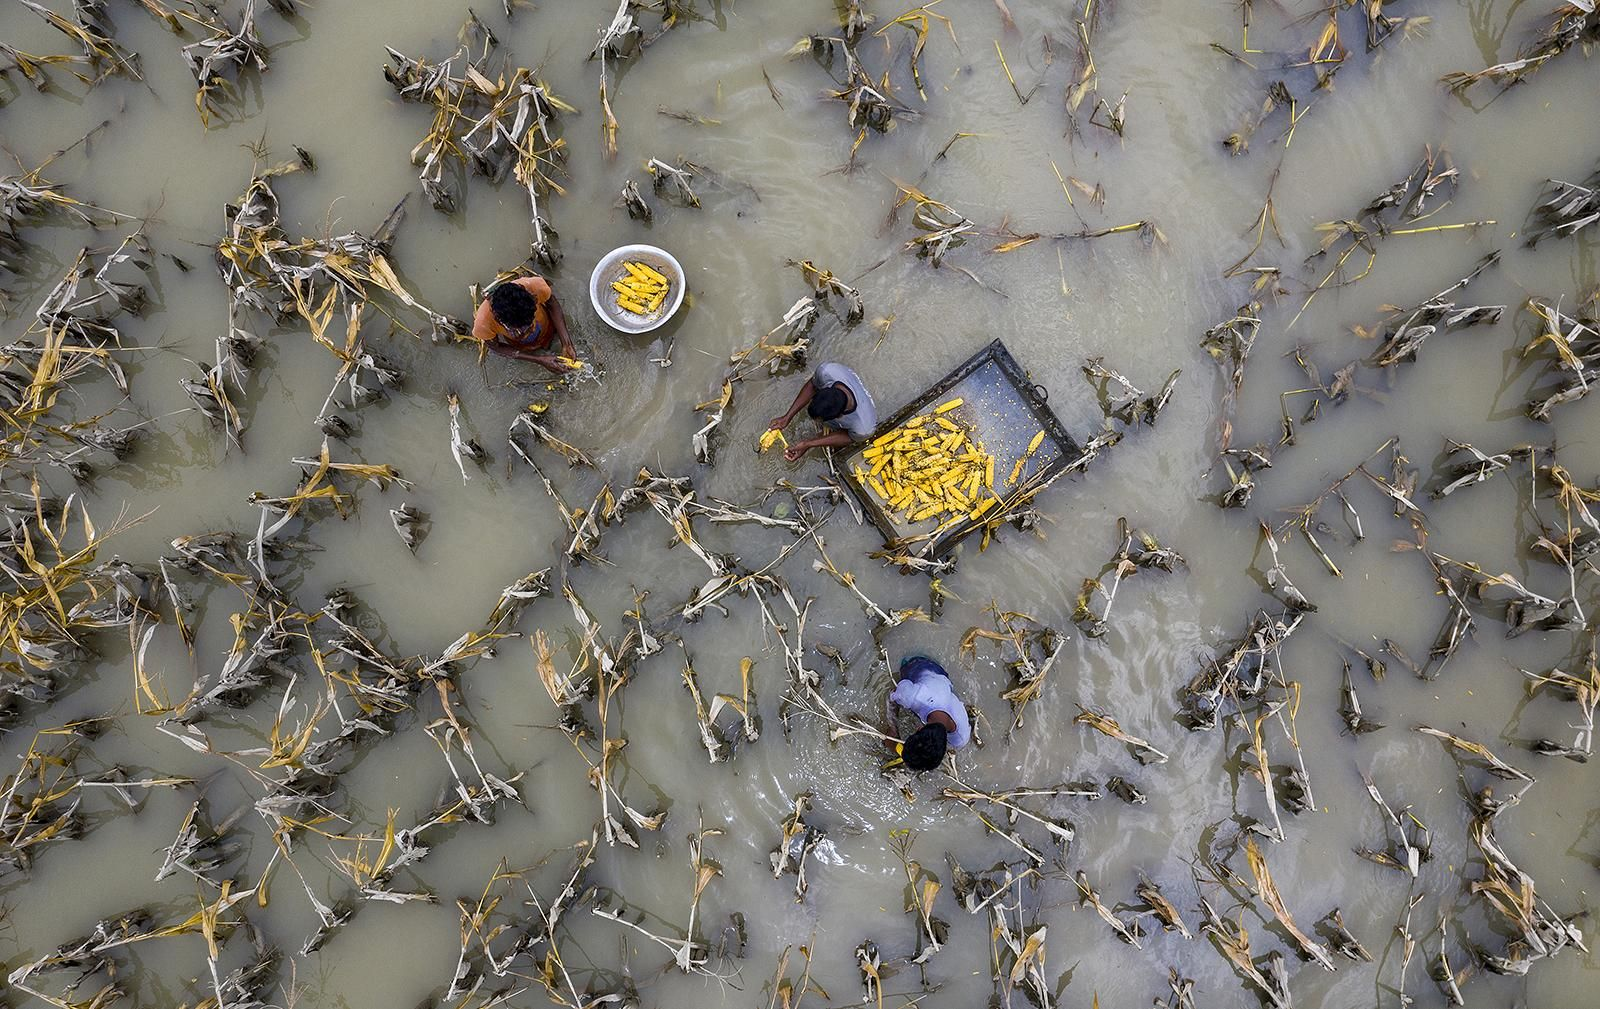 Flood-water-has-damaged-crops_Azim-Khan-Ronnie_Aerial-Photography-Awards-2021_preview